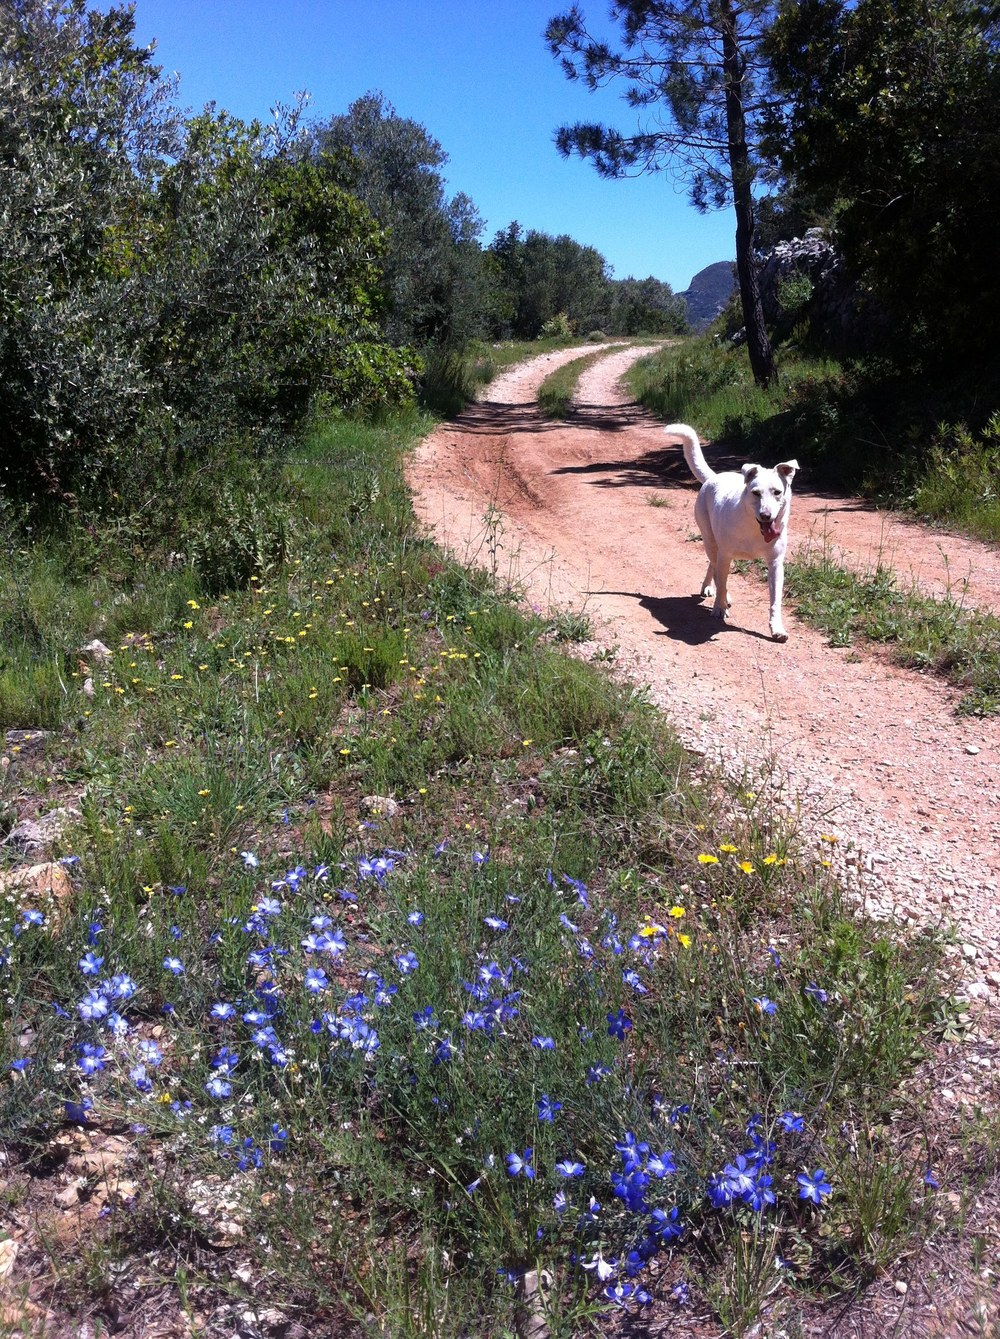 Blanca and 'bluebells'.